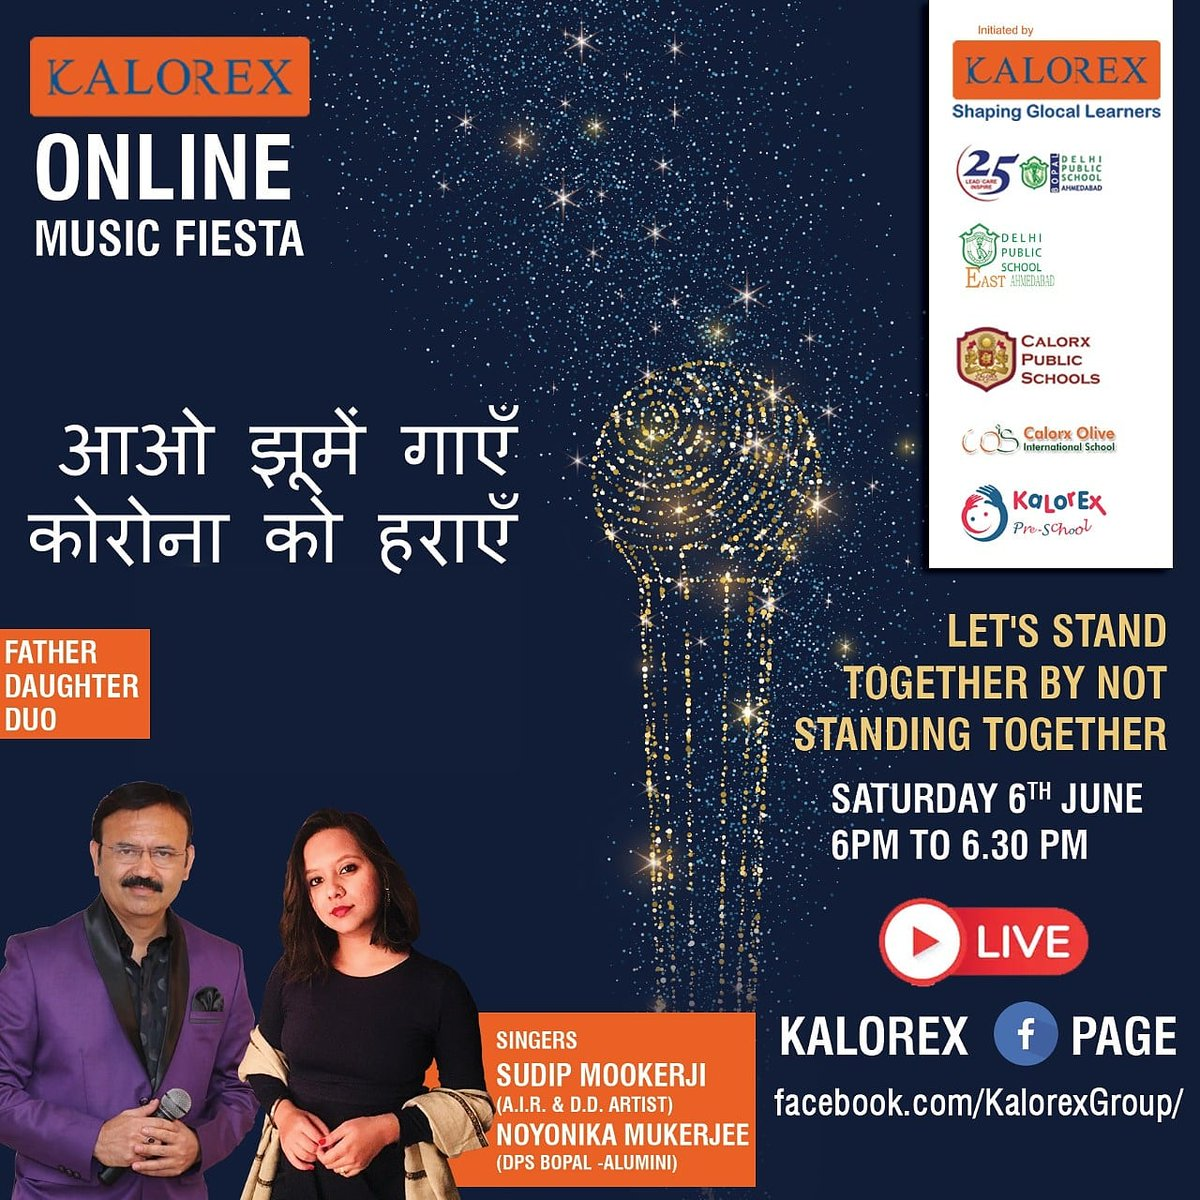 Kalorex Group is going live for Online Music Fiesta on Saturday 6th June  at 6.00 PM to 6.30 PM. Let's Stand Together by Not Standing Together With Sudip Mookerji  and Noyonaika Mukerjee only on Kalorex Group FB Page, Stay Tune, Stay Safe & Stay at Home.   #Kalorex #KOMF #FBLive https://t.co/f6y5o1sOky